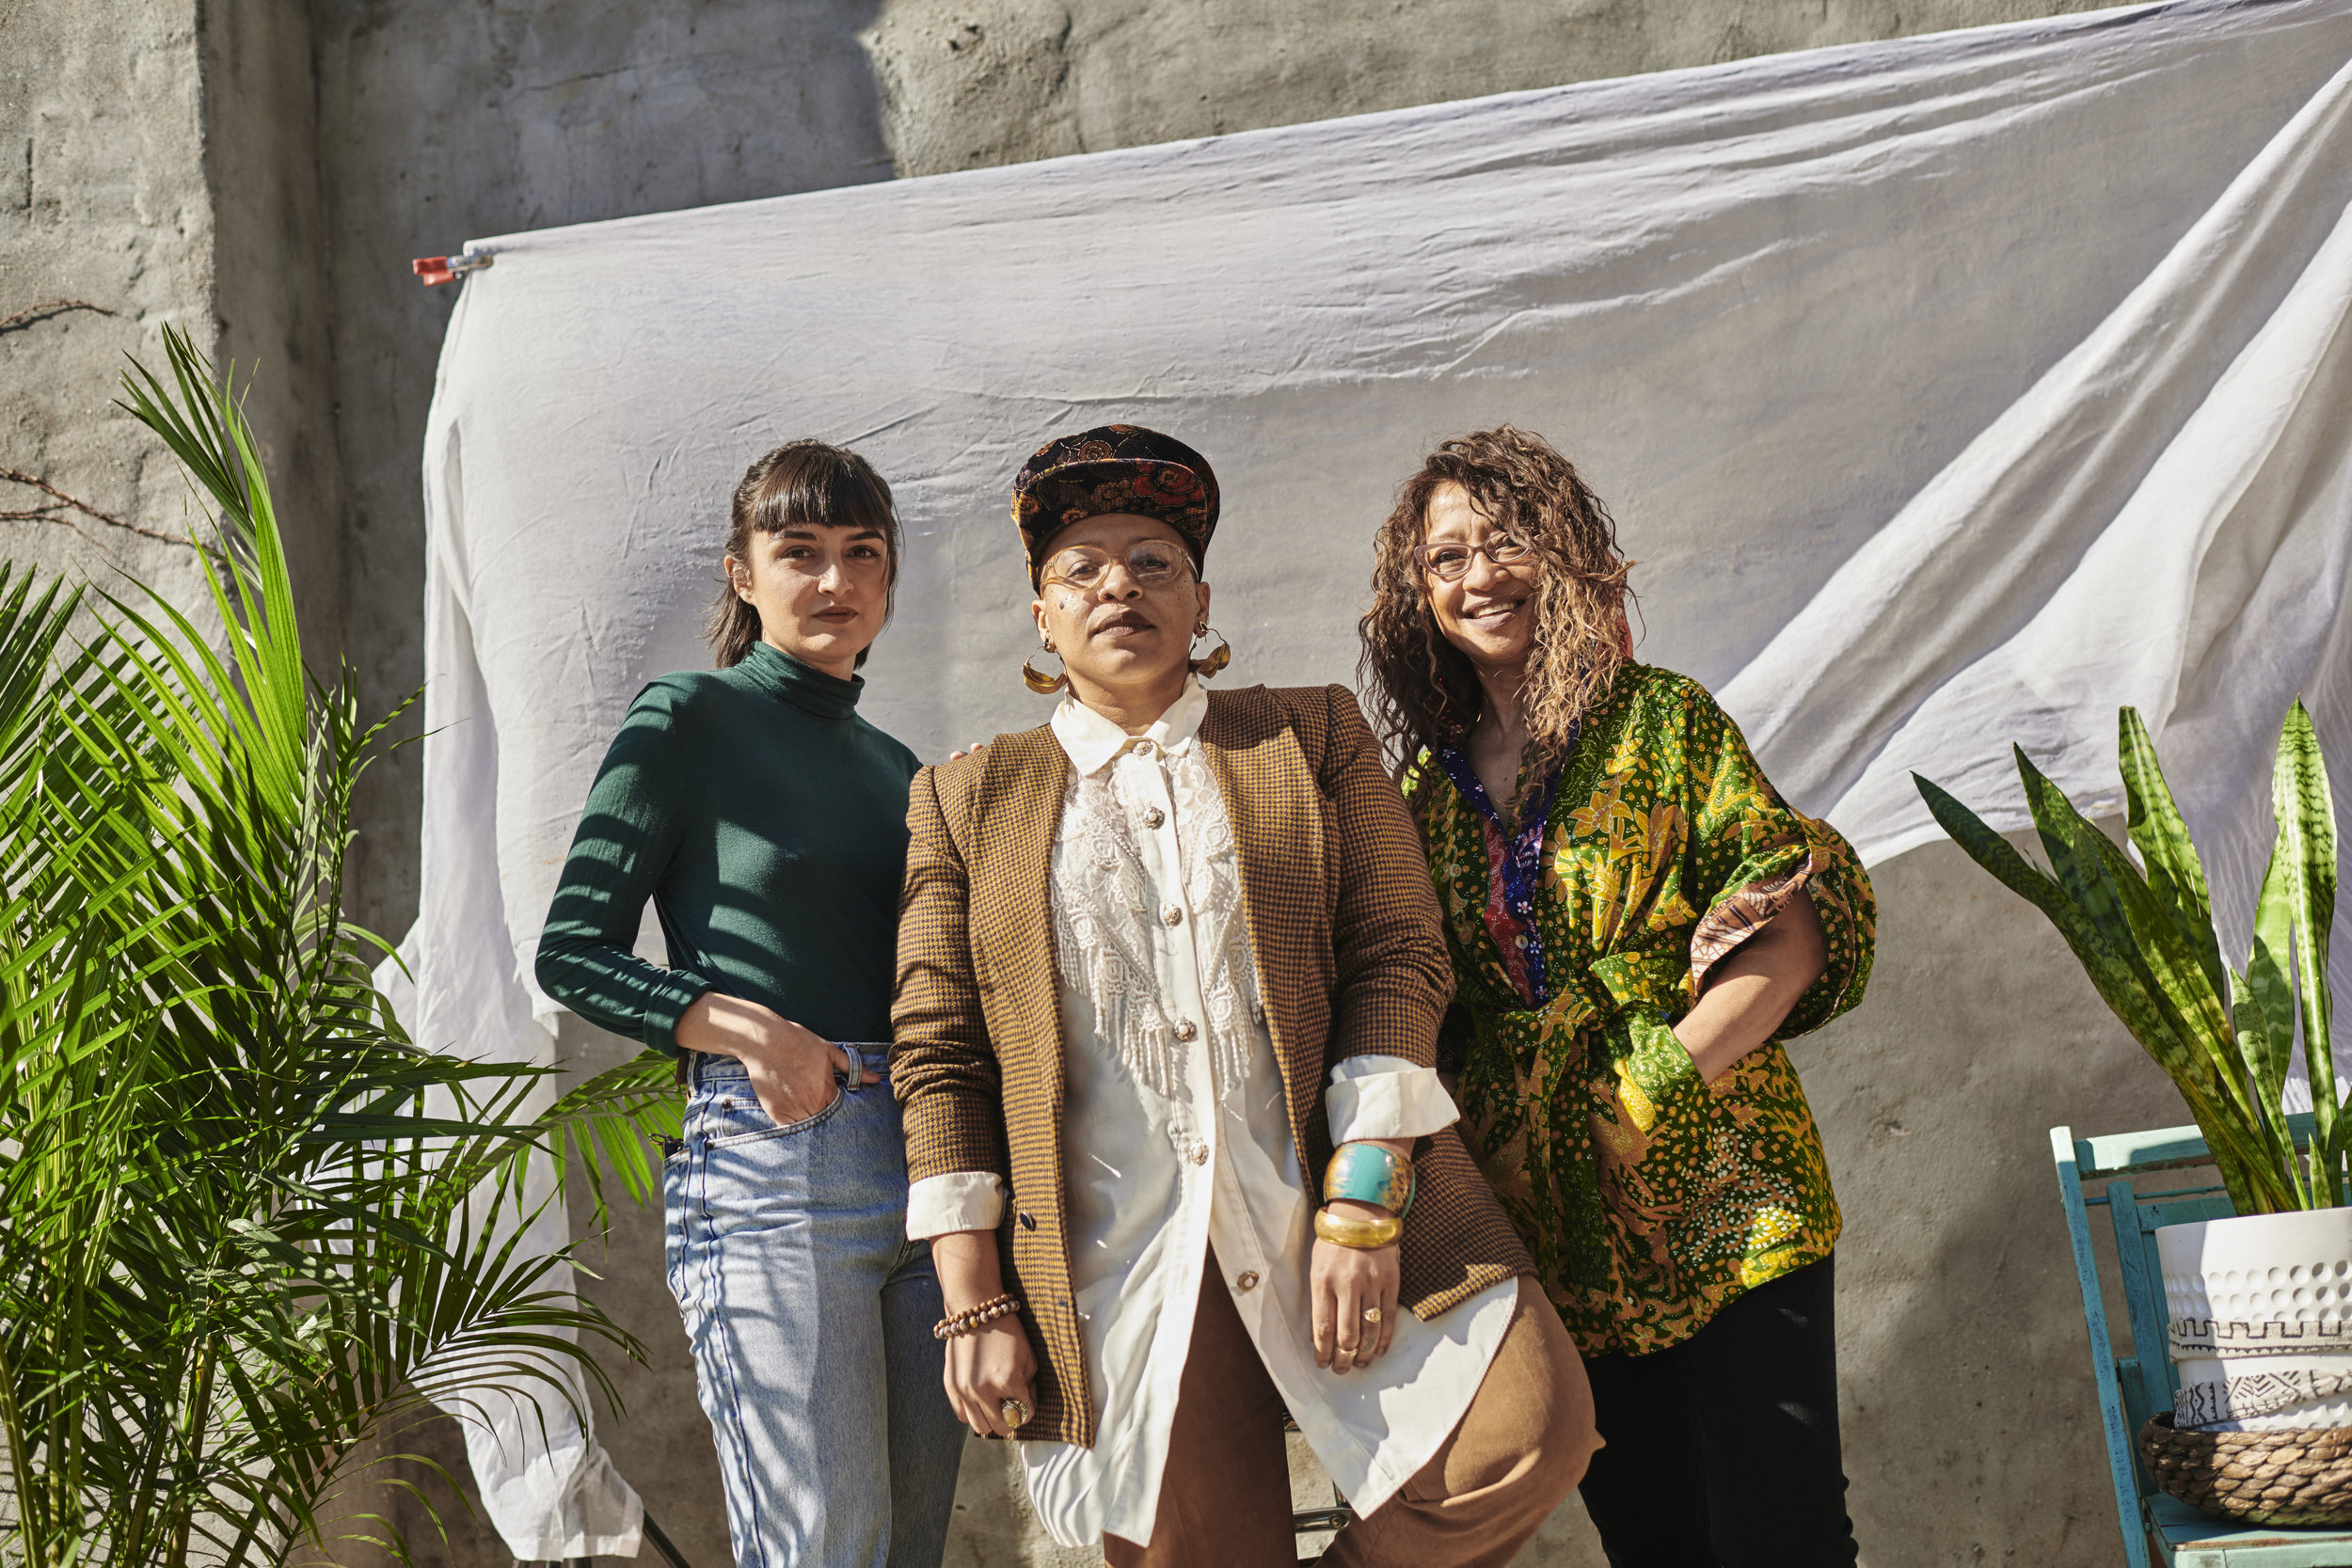 Reza Cristián, DeVonne Jackson, Tess Tiaba  (left to right)